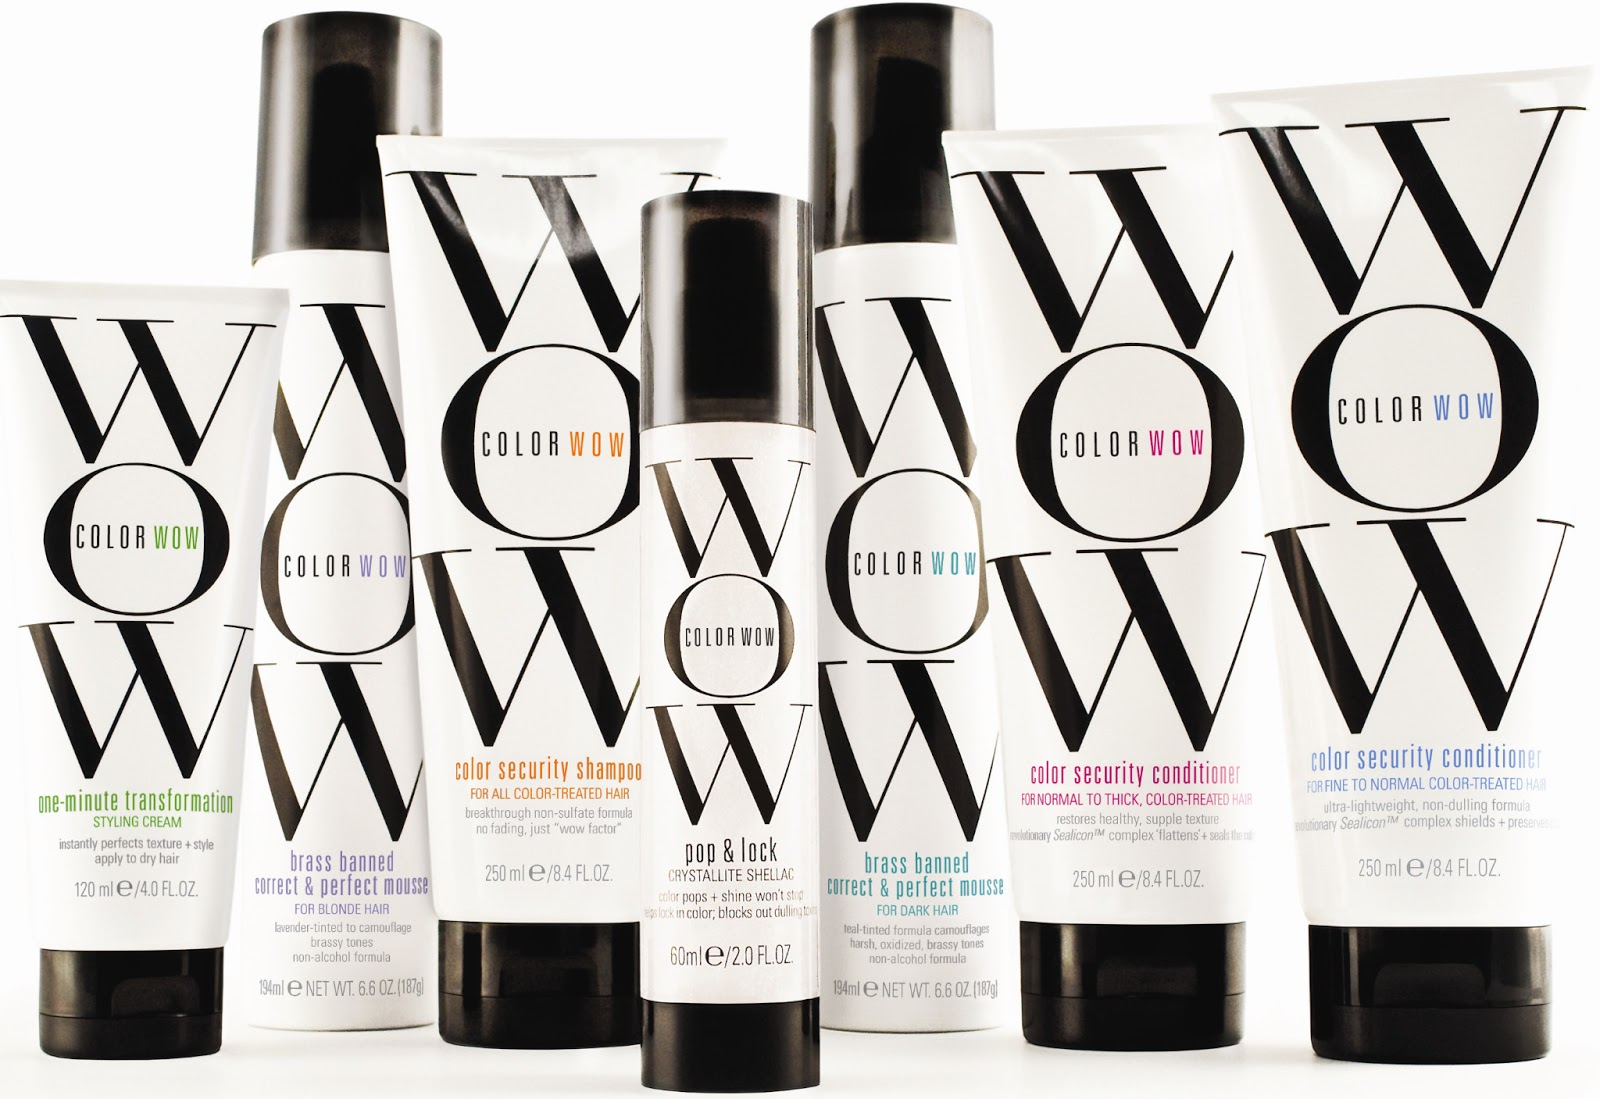 Color Wow Also Has A Range Of Mousse Shampoo Conditioners And Styling Cream That Helps To Maintain The Moisture Earance Treated Hair